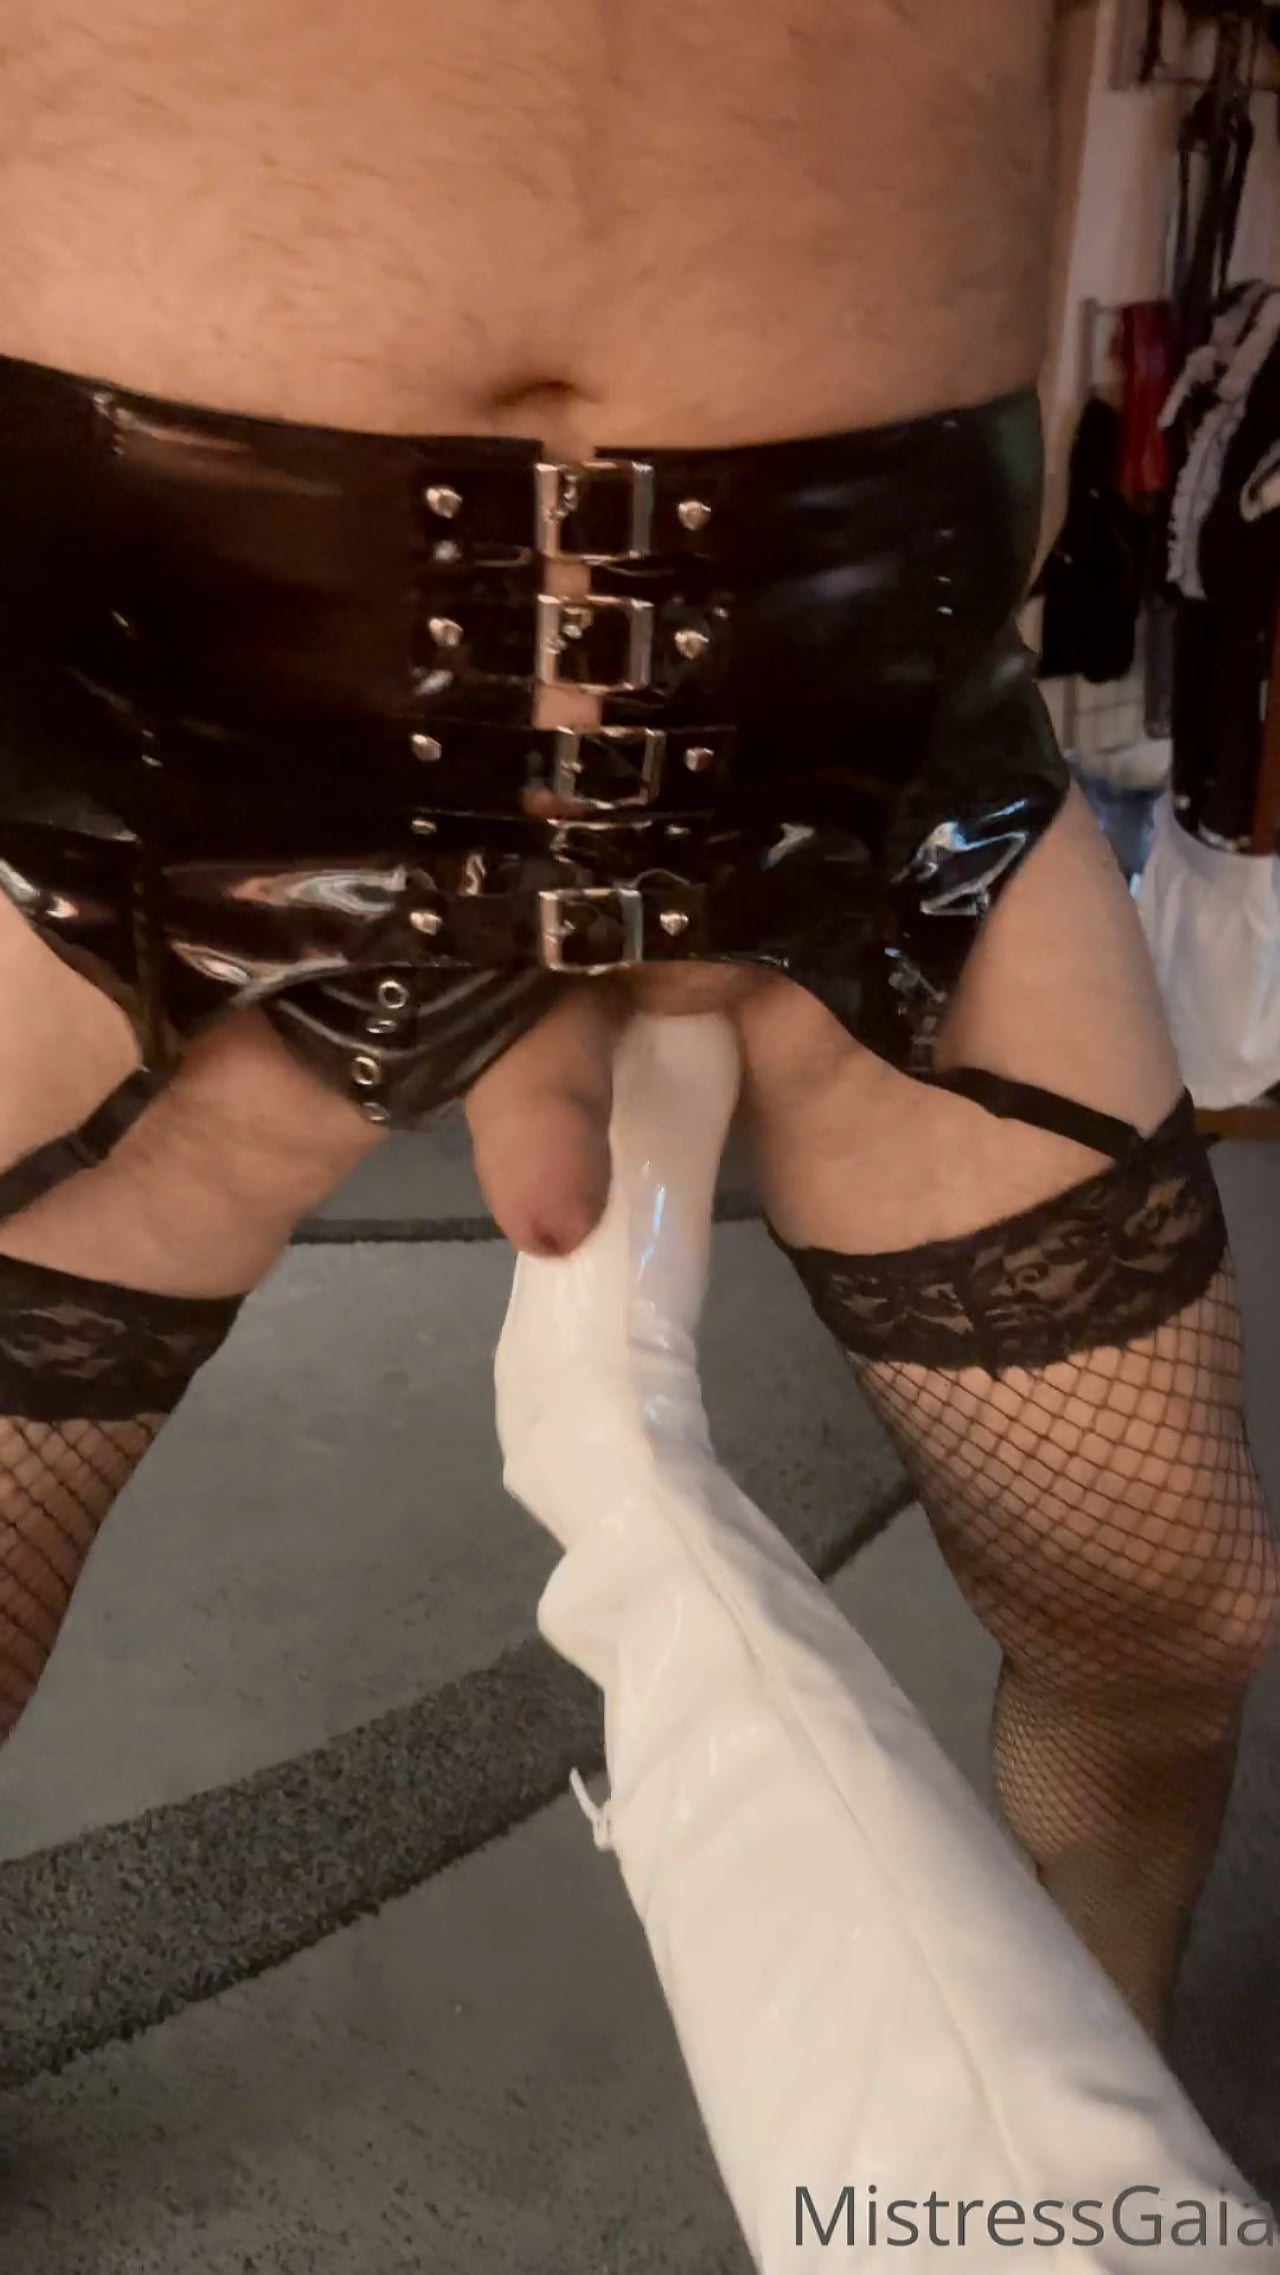 Gaia Padrona In Scene: All Ready To Give Me The Balls - MISTRESS GAIA - FULL HD/1920p/MP4